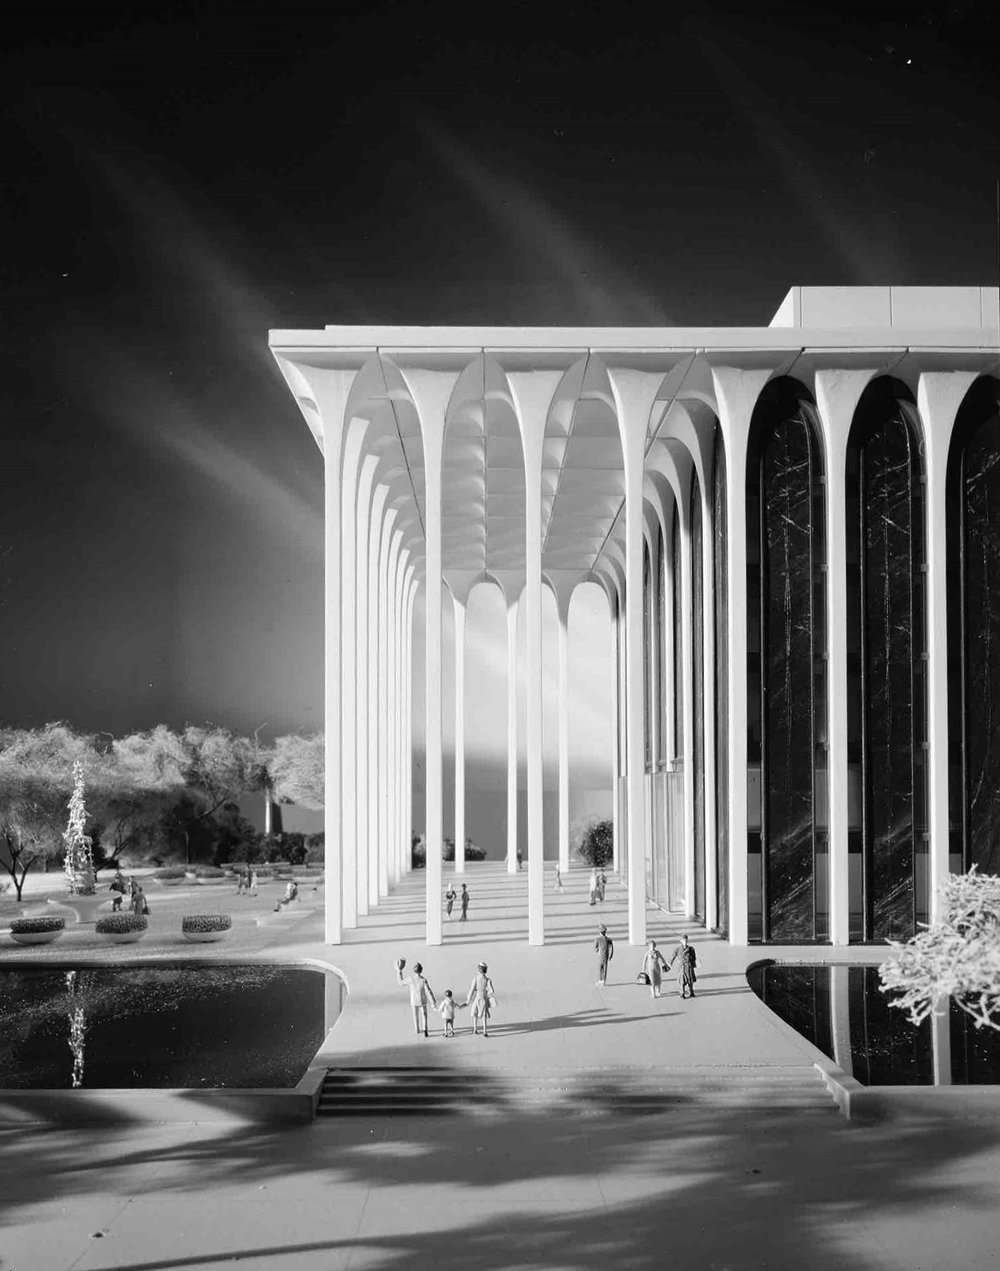 Minoru Yamasaki, Northwestern National Life Building (Minneapolis, MN) 1964